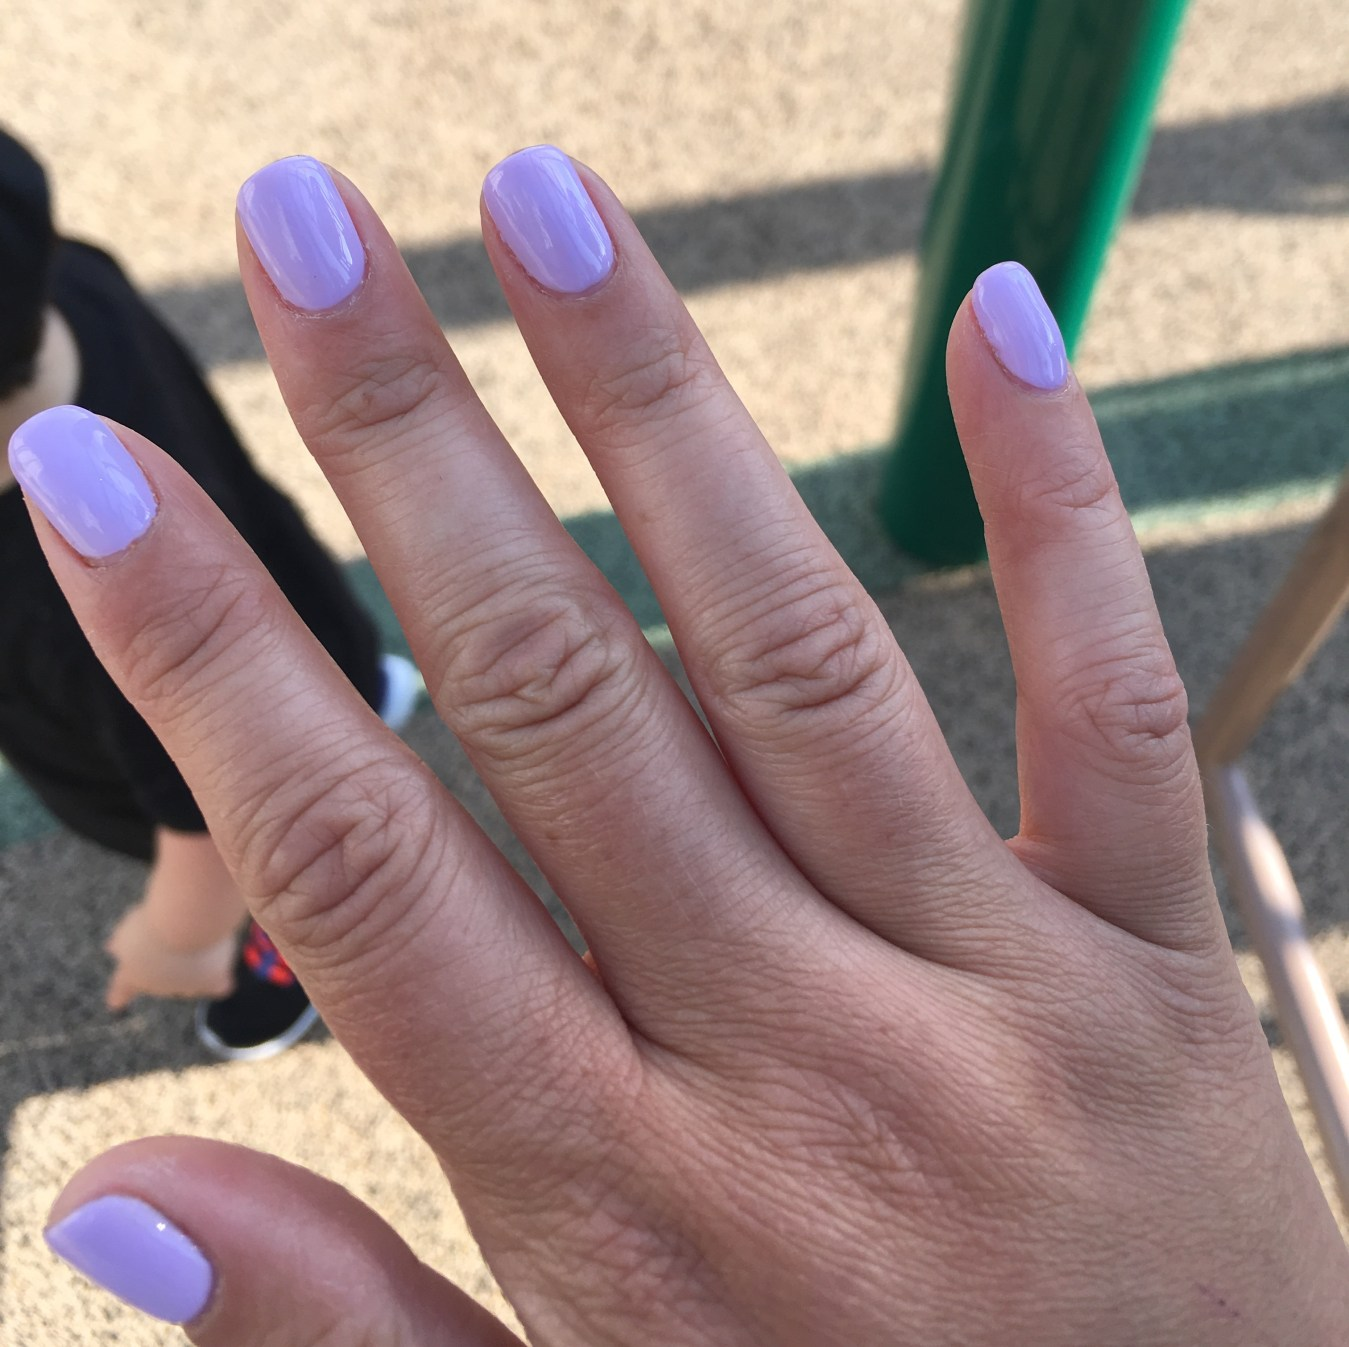 I Adore What I Love Blog // WEEKLY WINS #21 // Lilac Gel Nails / www.iadorewhatilove.com #iadorewhatilove